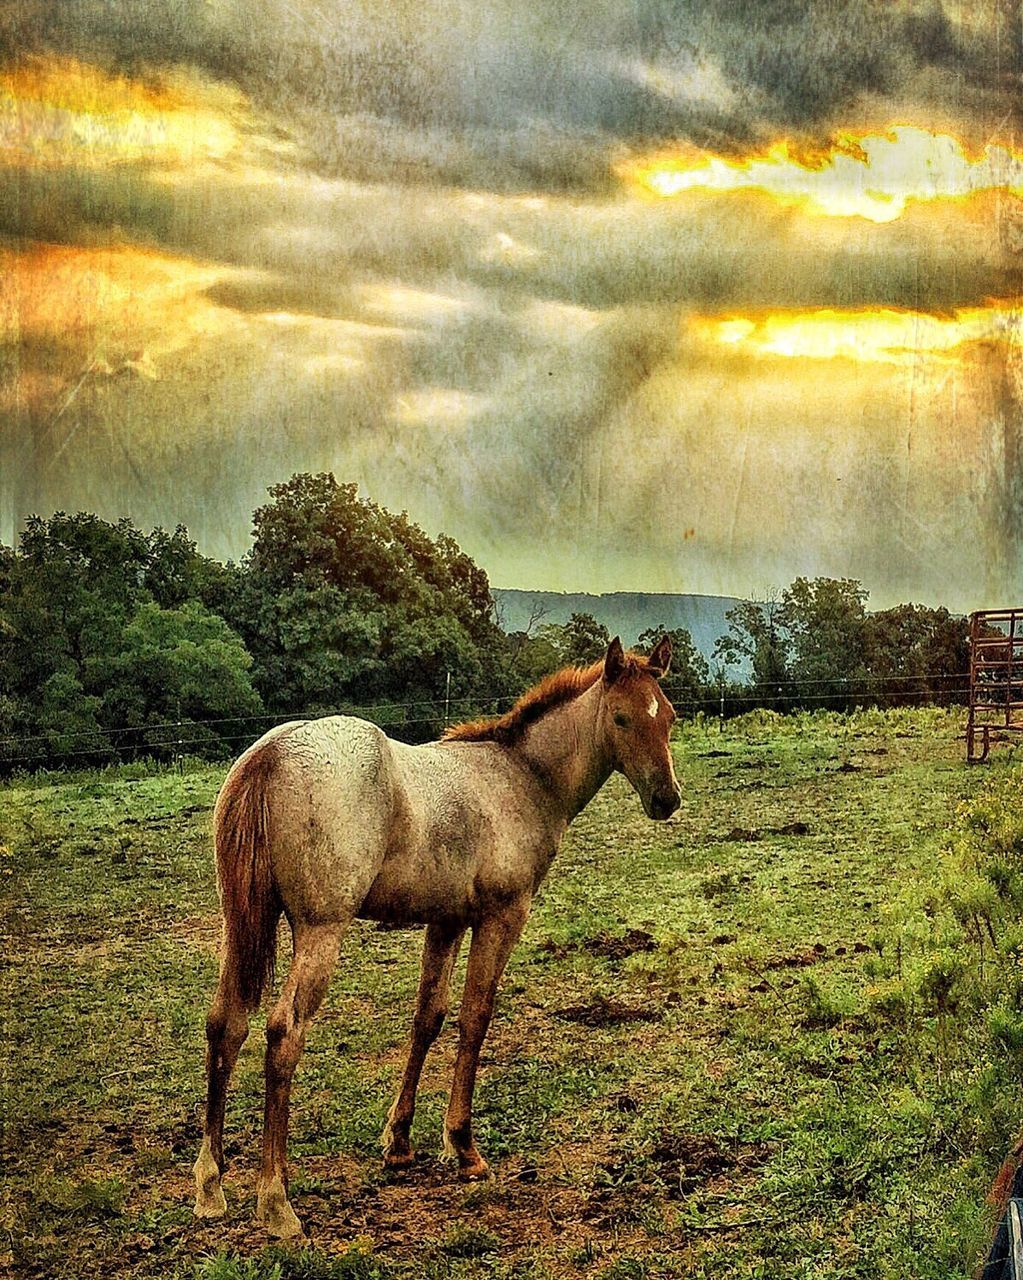 horse, animal themes, domestic animals, sky, field, mammal, nature, tree, cloud - sky, one animal, no people, outdoors, landscape, beauty in nature, livestock, standing, grass, day